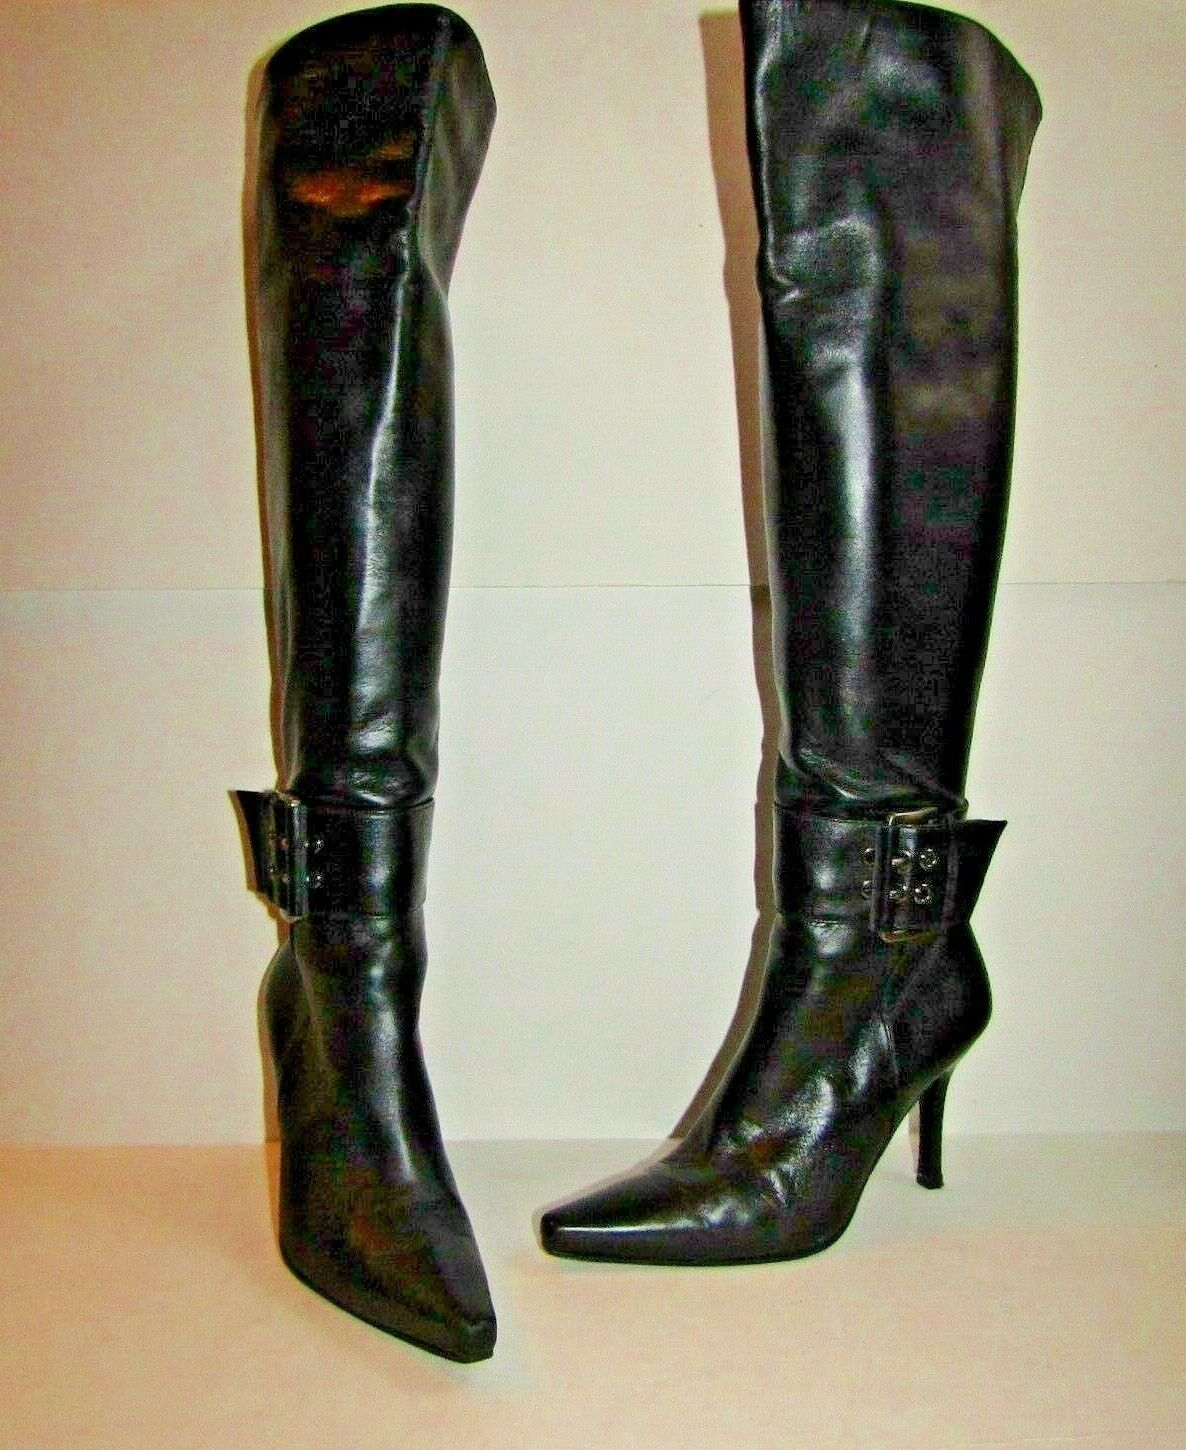 STUART WEITZMAN WEITZMAN WEITZMAN Leather Knee High Boots US 6 3bf780